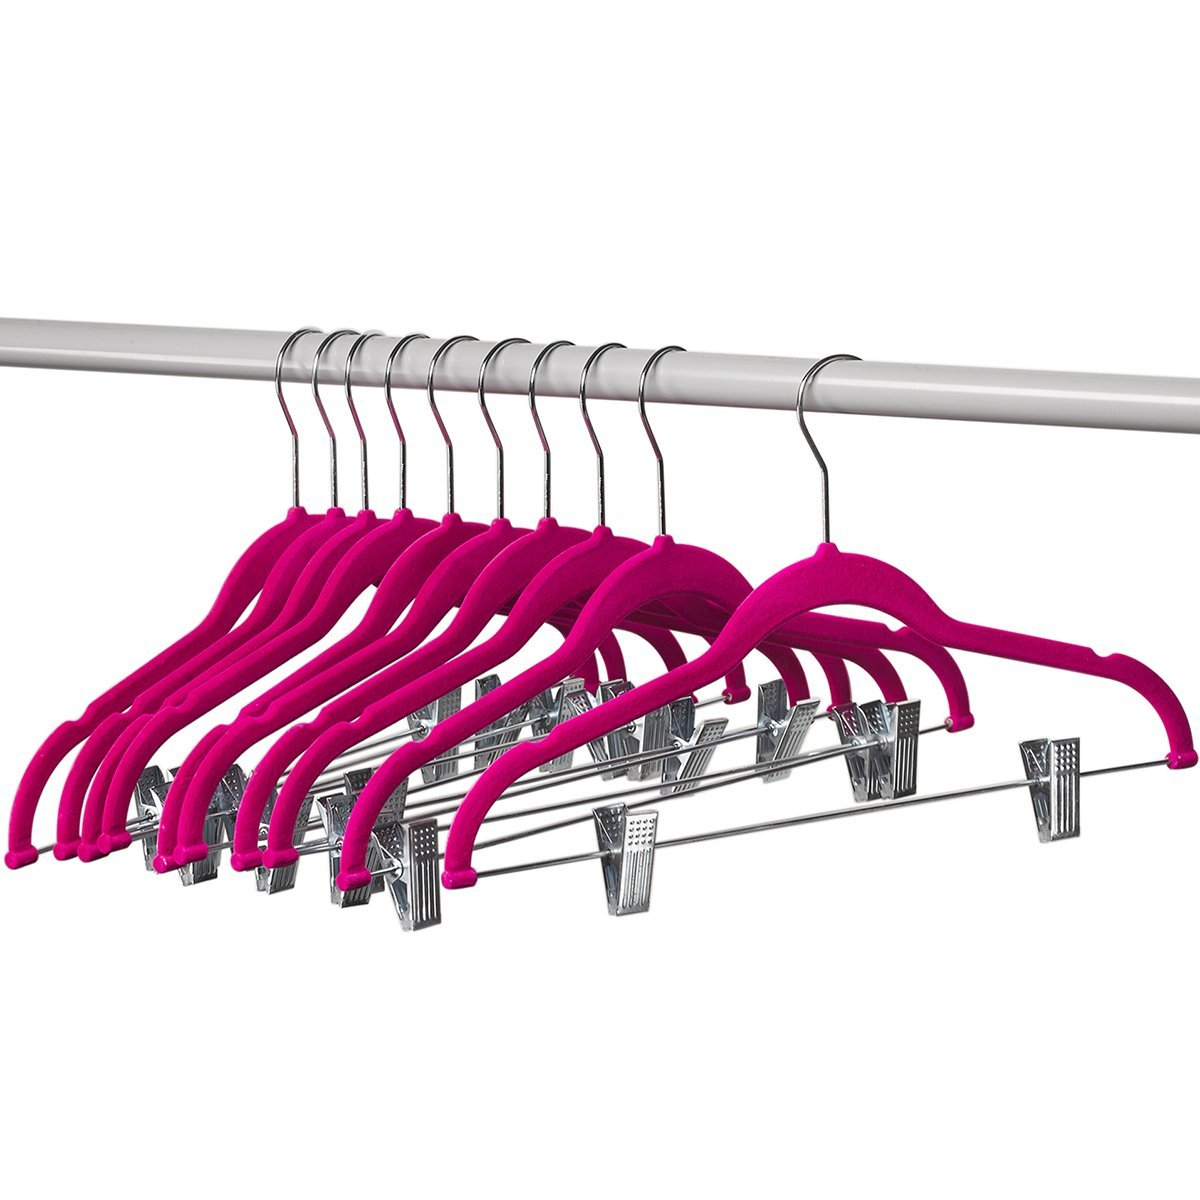 Home-it 10 Pack Clothes Hangers with clips - PINK Velvet Hangers - made for skirt hangers - Clothes Hanger - pants hangers - Ultra Thin No Slip